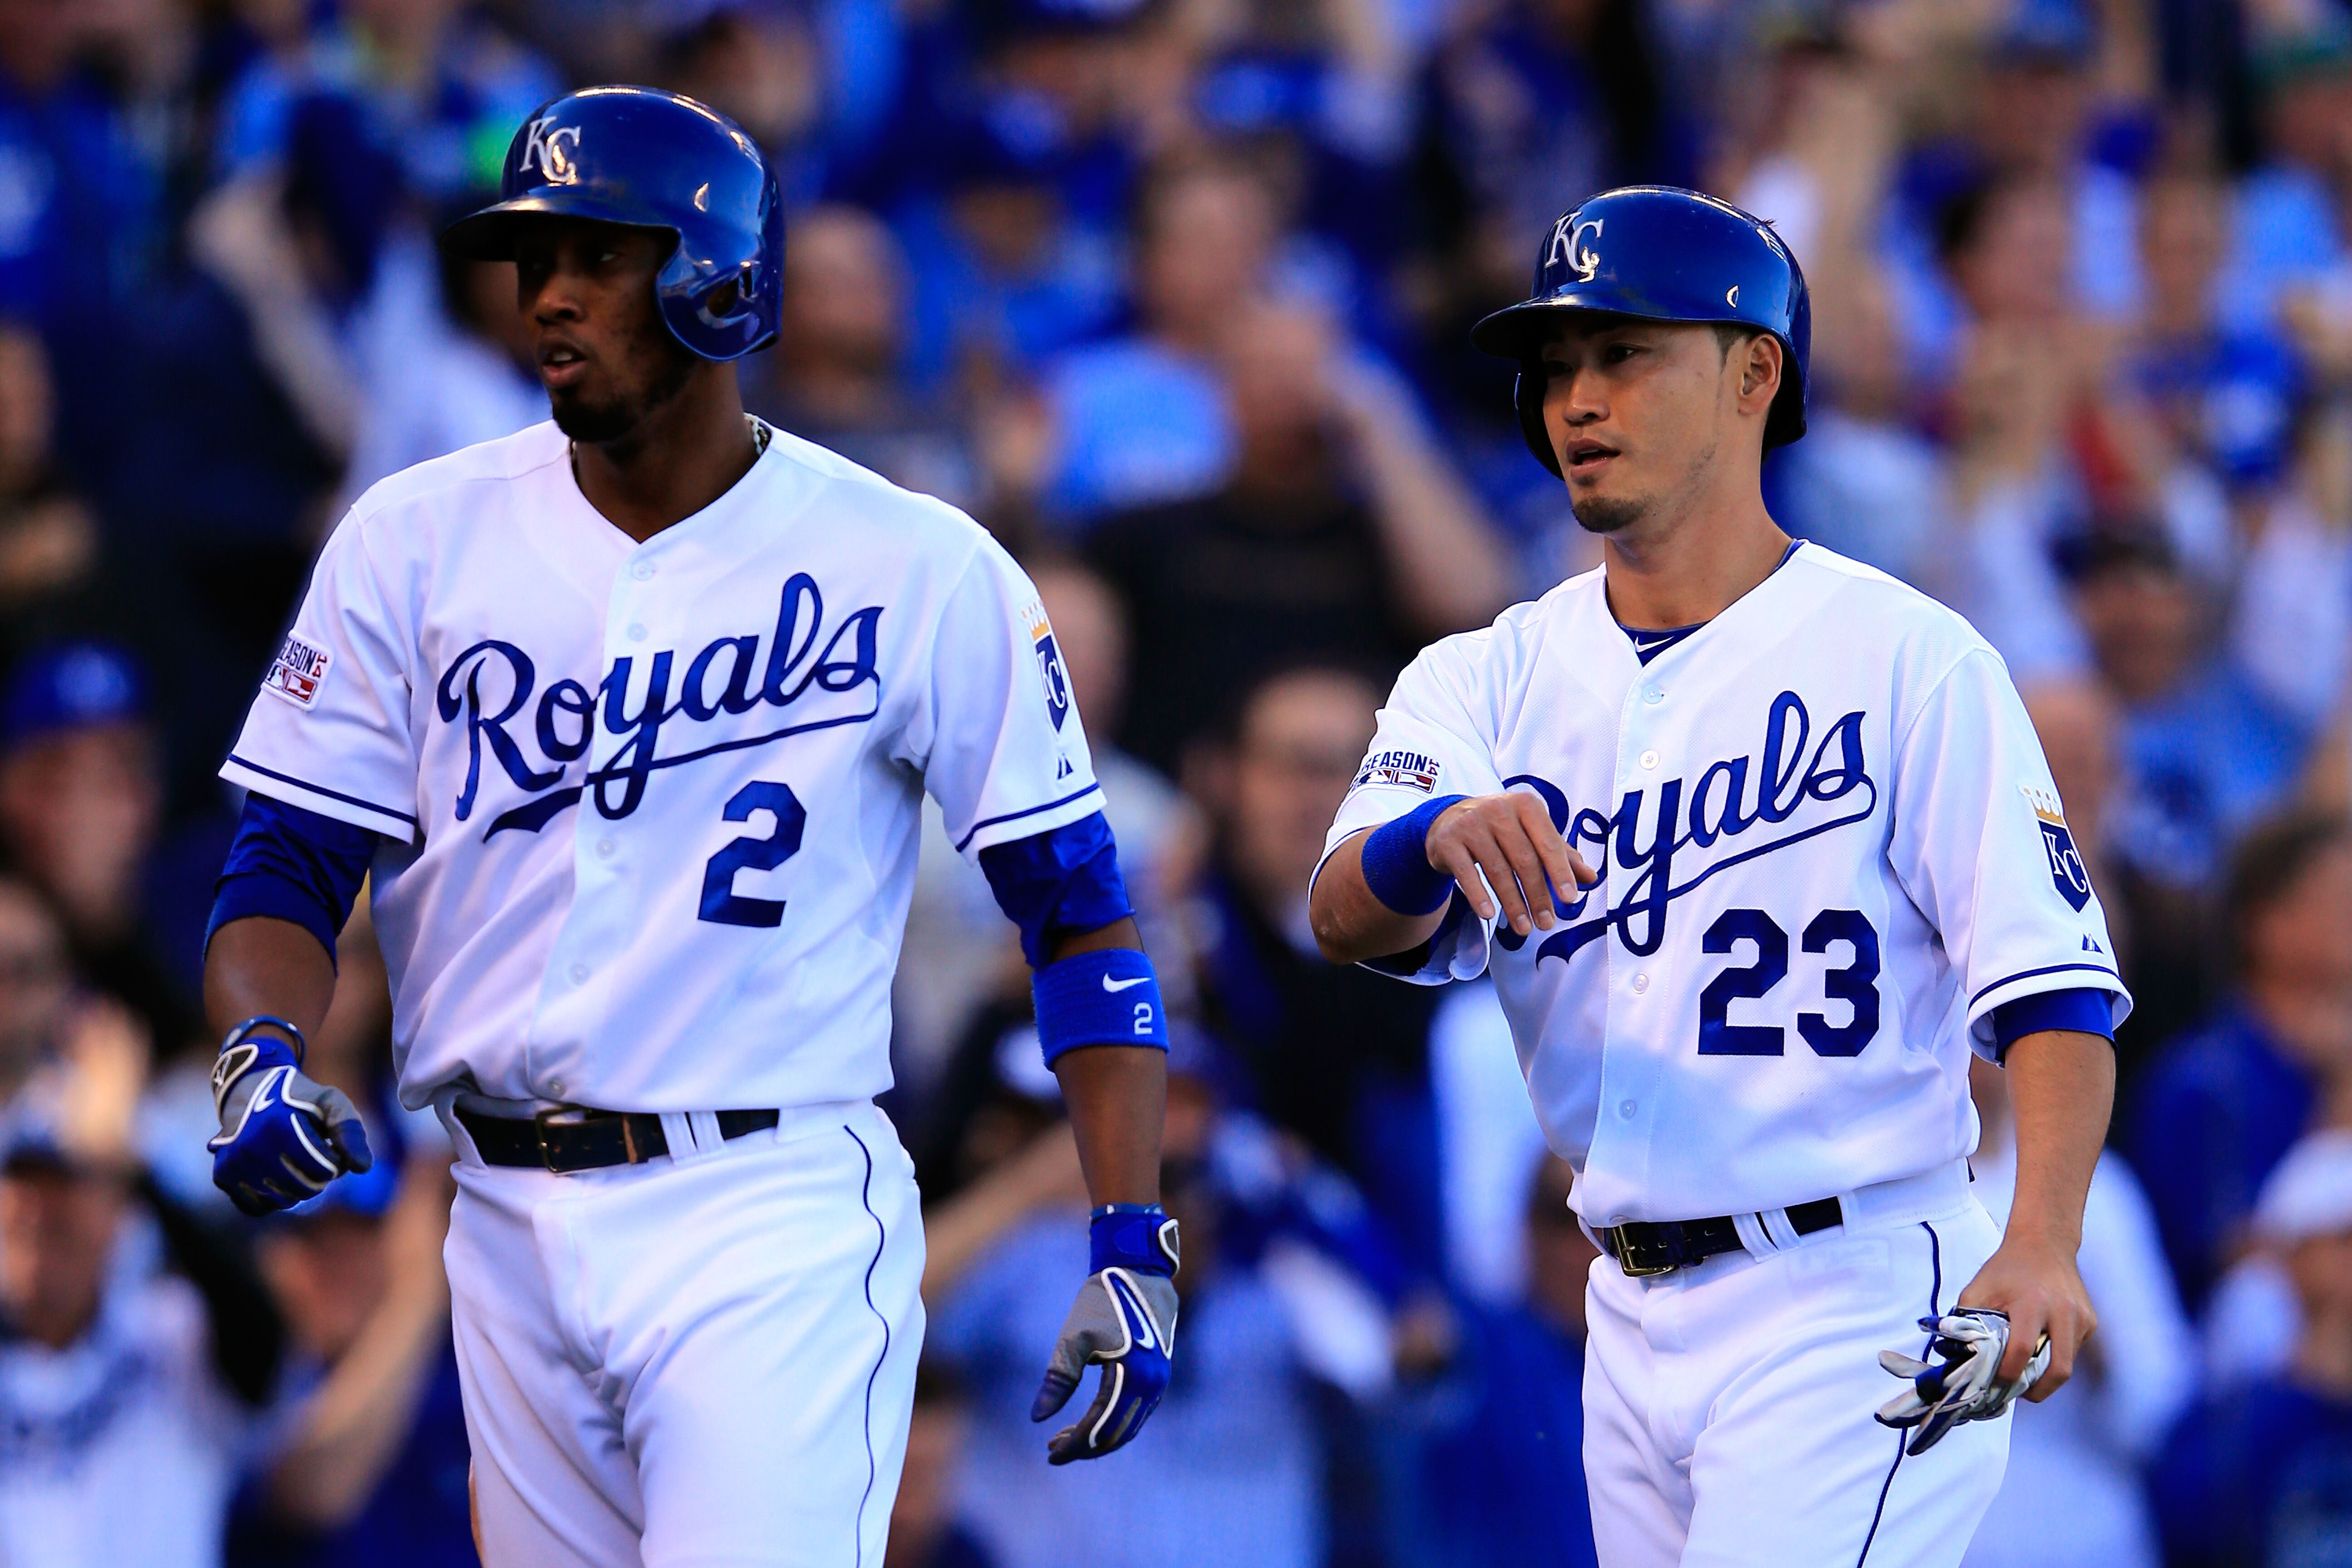 457556162-alcs-baltimore-orioles-v-kansas-city-royals-game-four.jpg